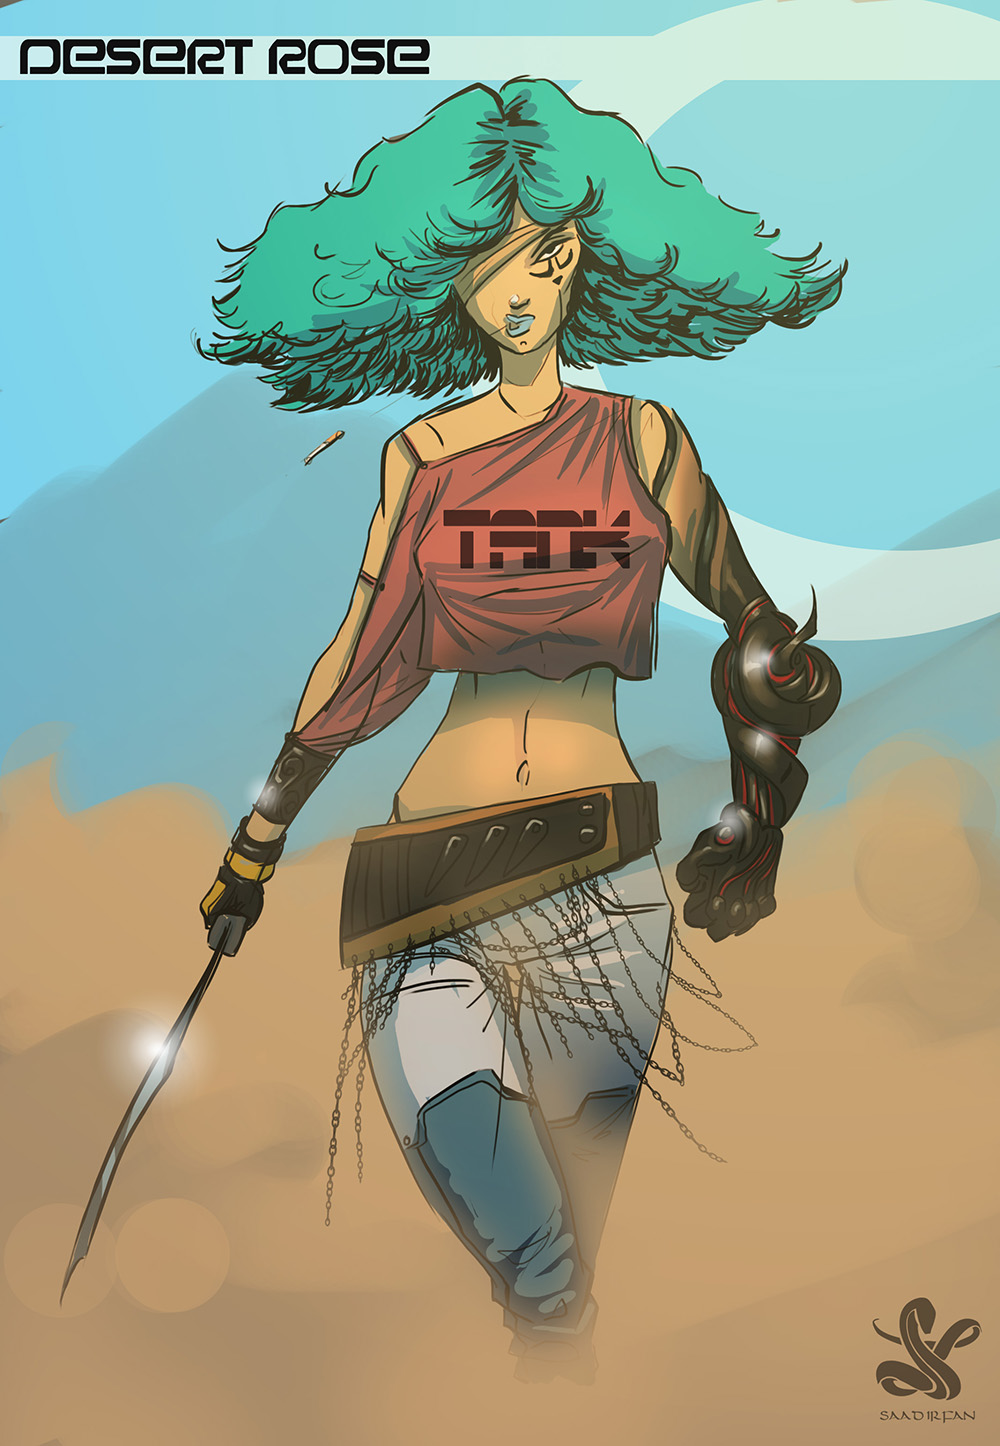 Desert Rose by saadirfan